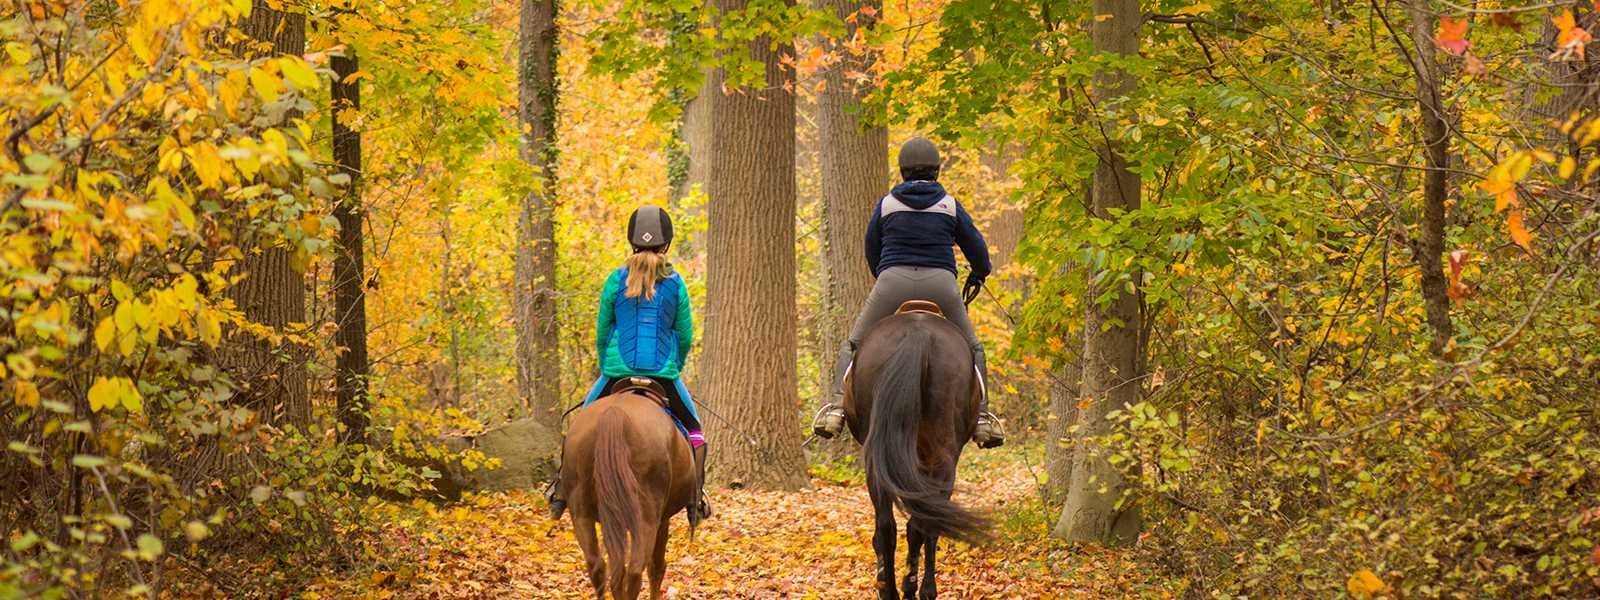 Horseback Riding at Bellevue State Park, Wilmington, Delaware